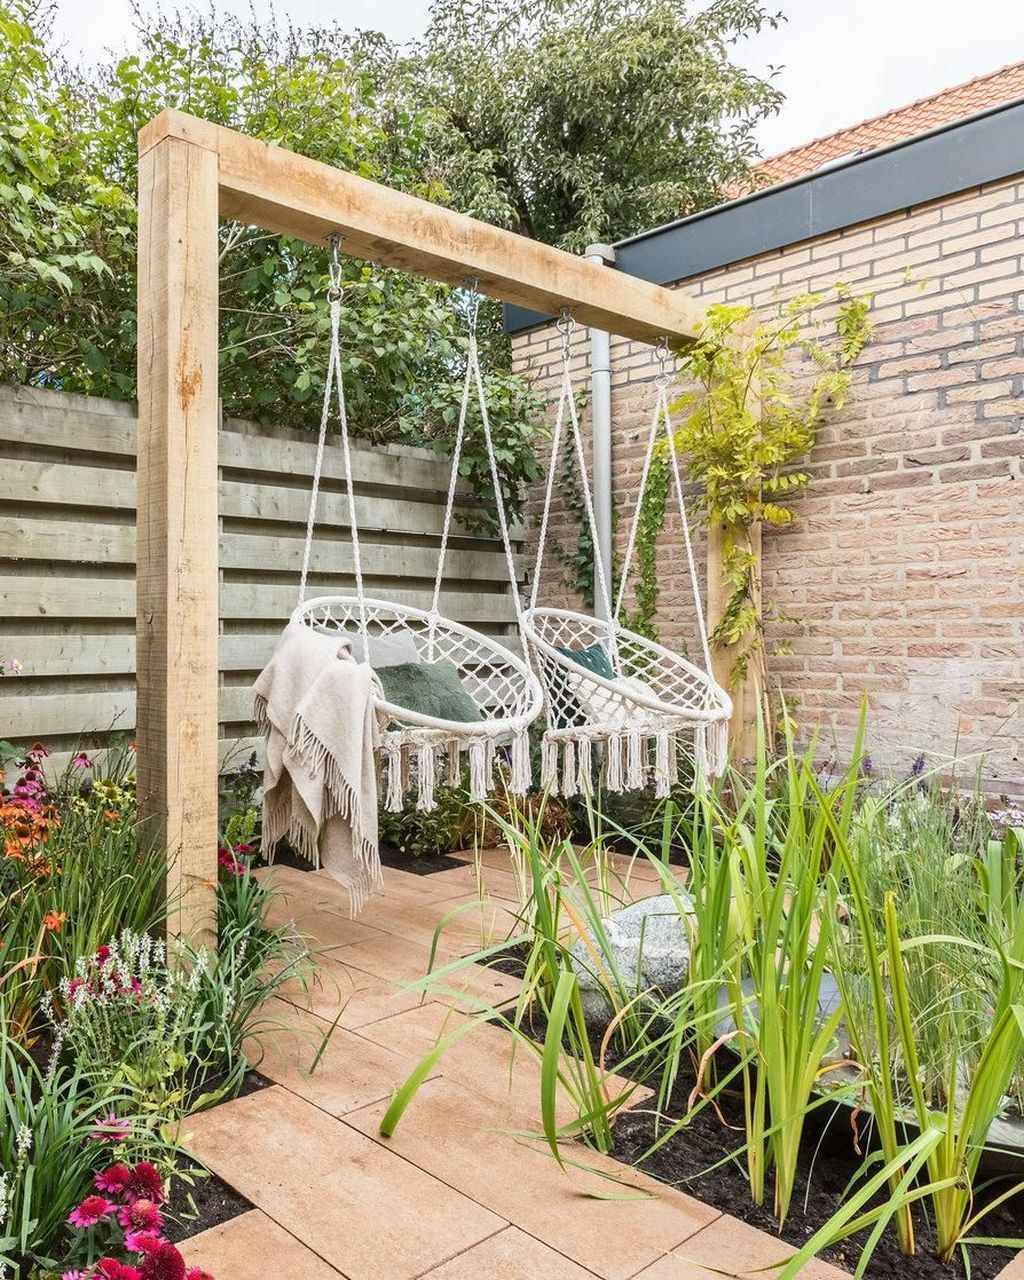 80 Awesome Garden Swing Seats Ideas For Backyard Relaxing Garden When You Are Set On Kicking Back And Enjoying Your Garden Swing Seat Backyard Decor Backyard